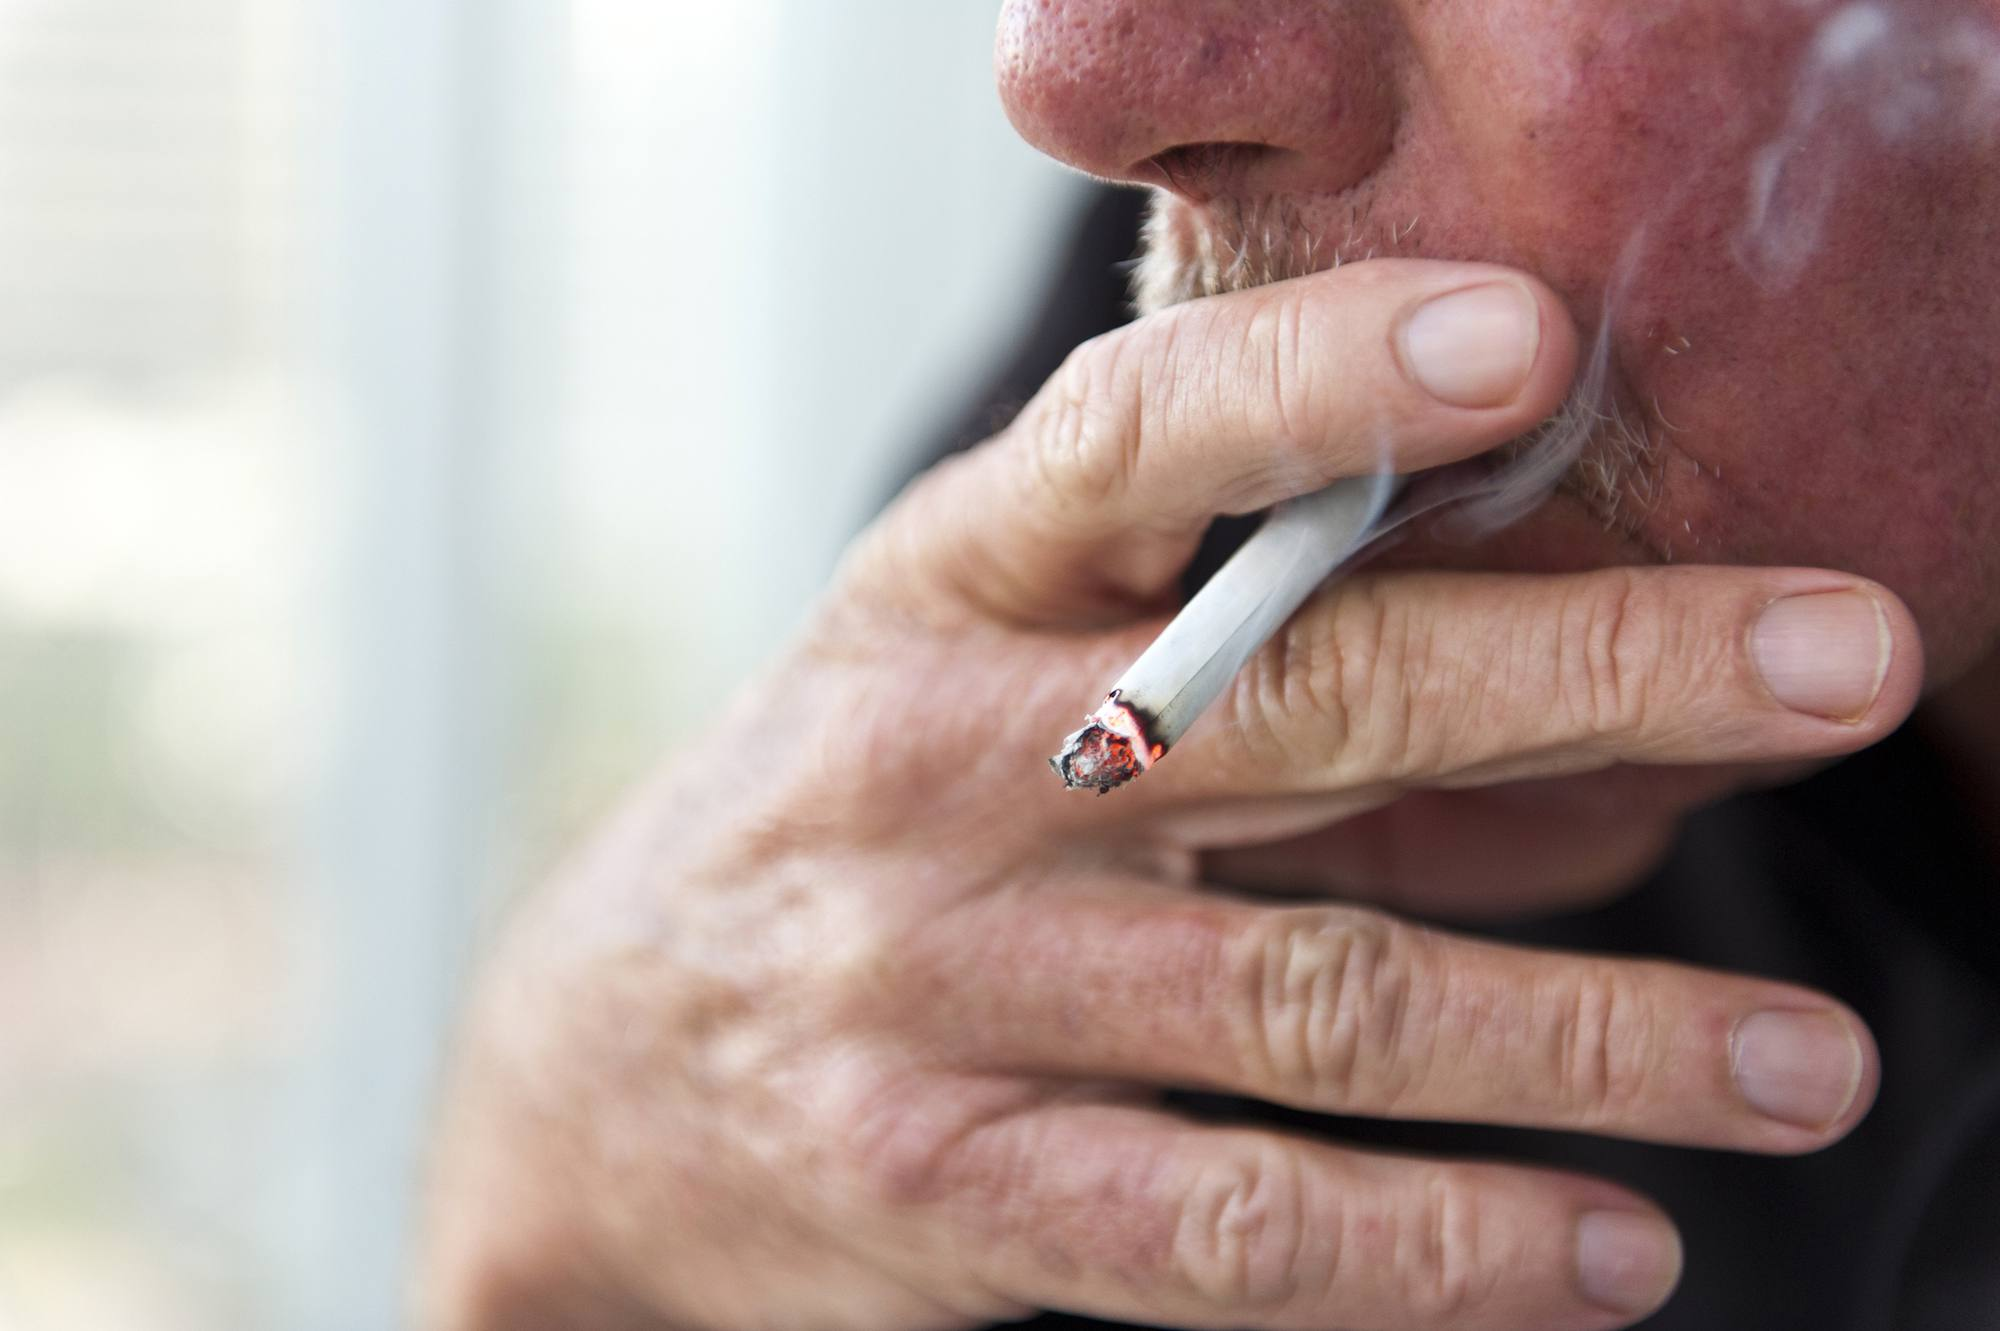 Smoking increases double the risk of psoriasis: experts